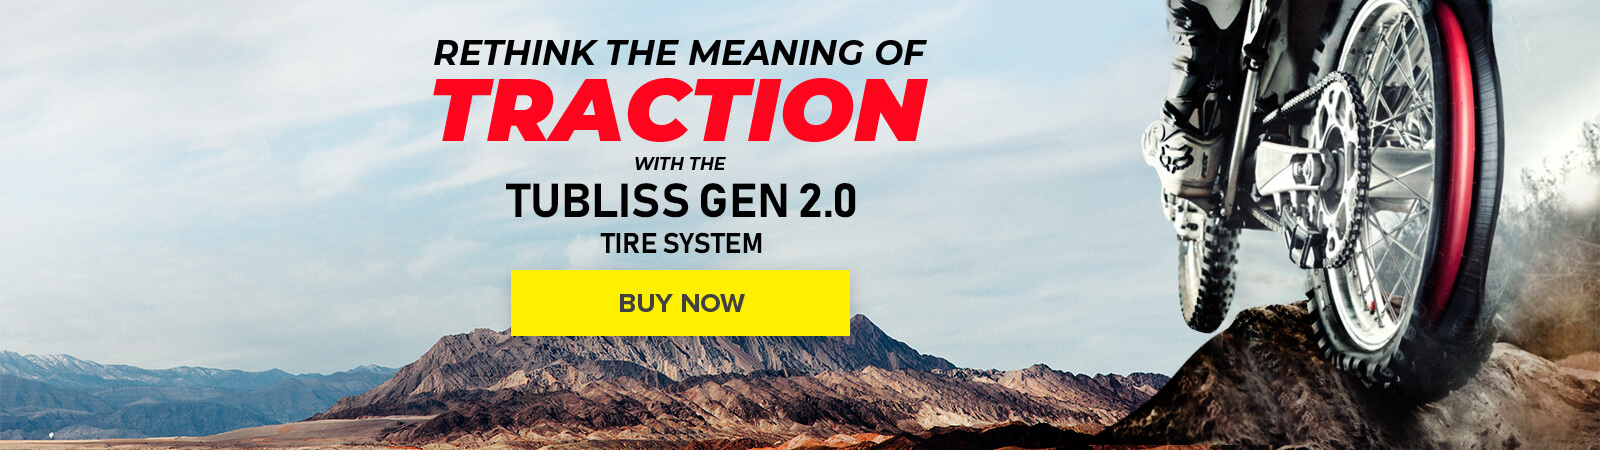 tubliss gen - tire system